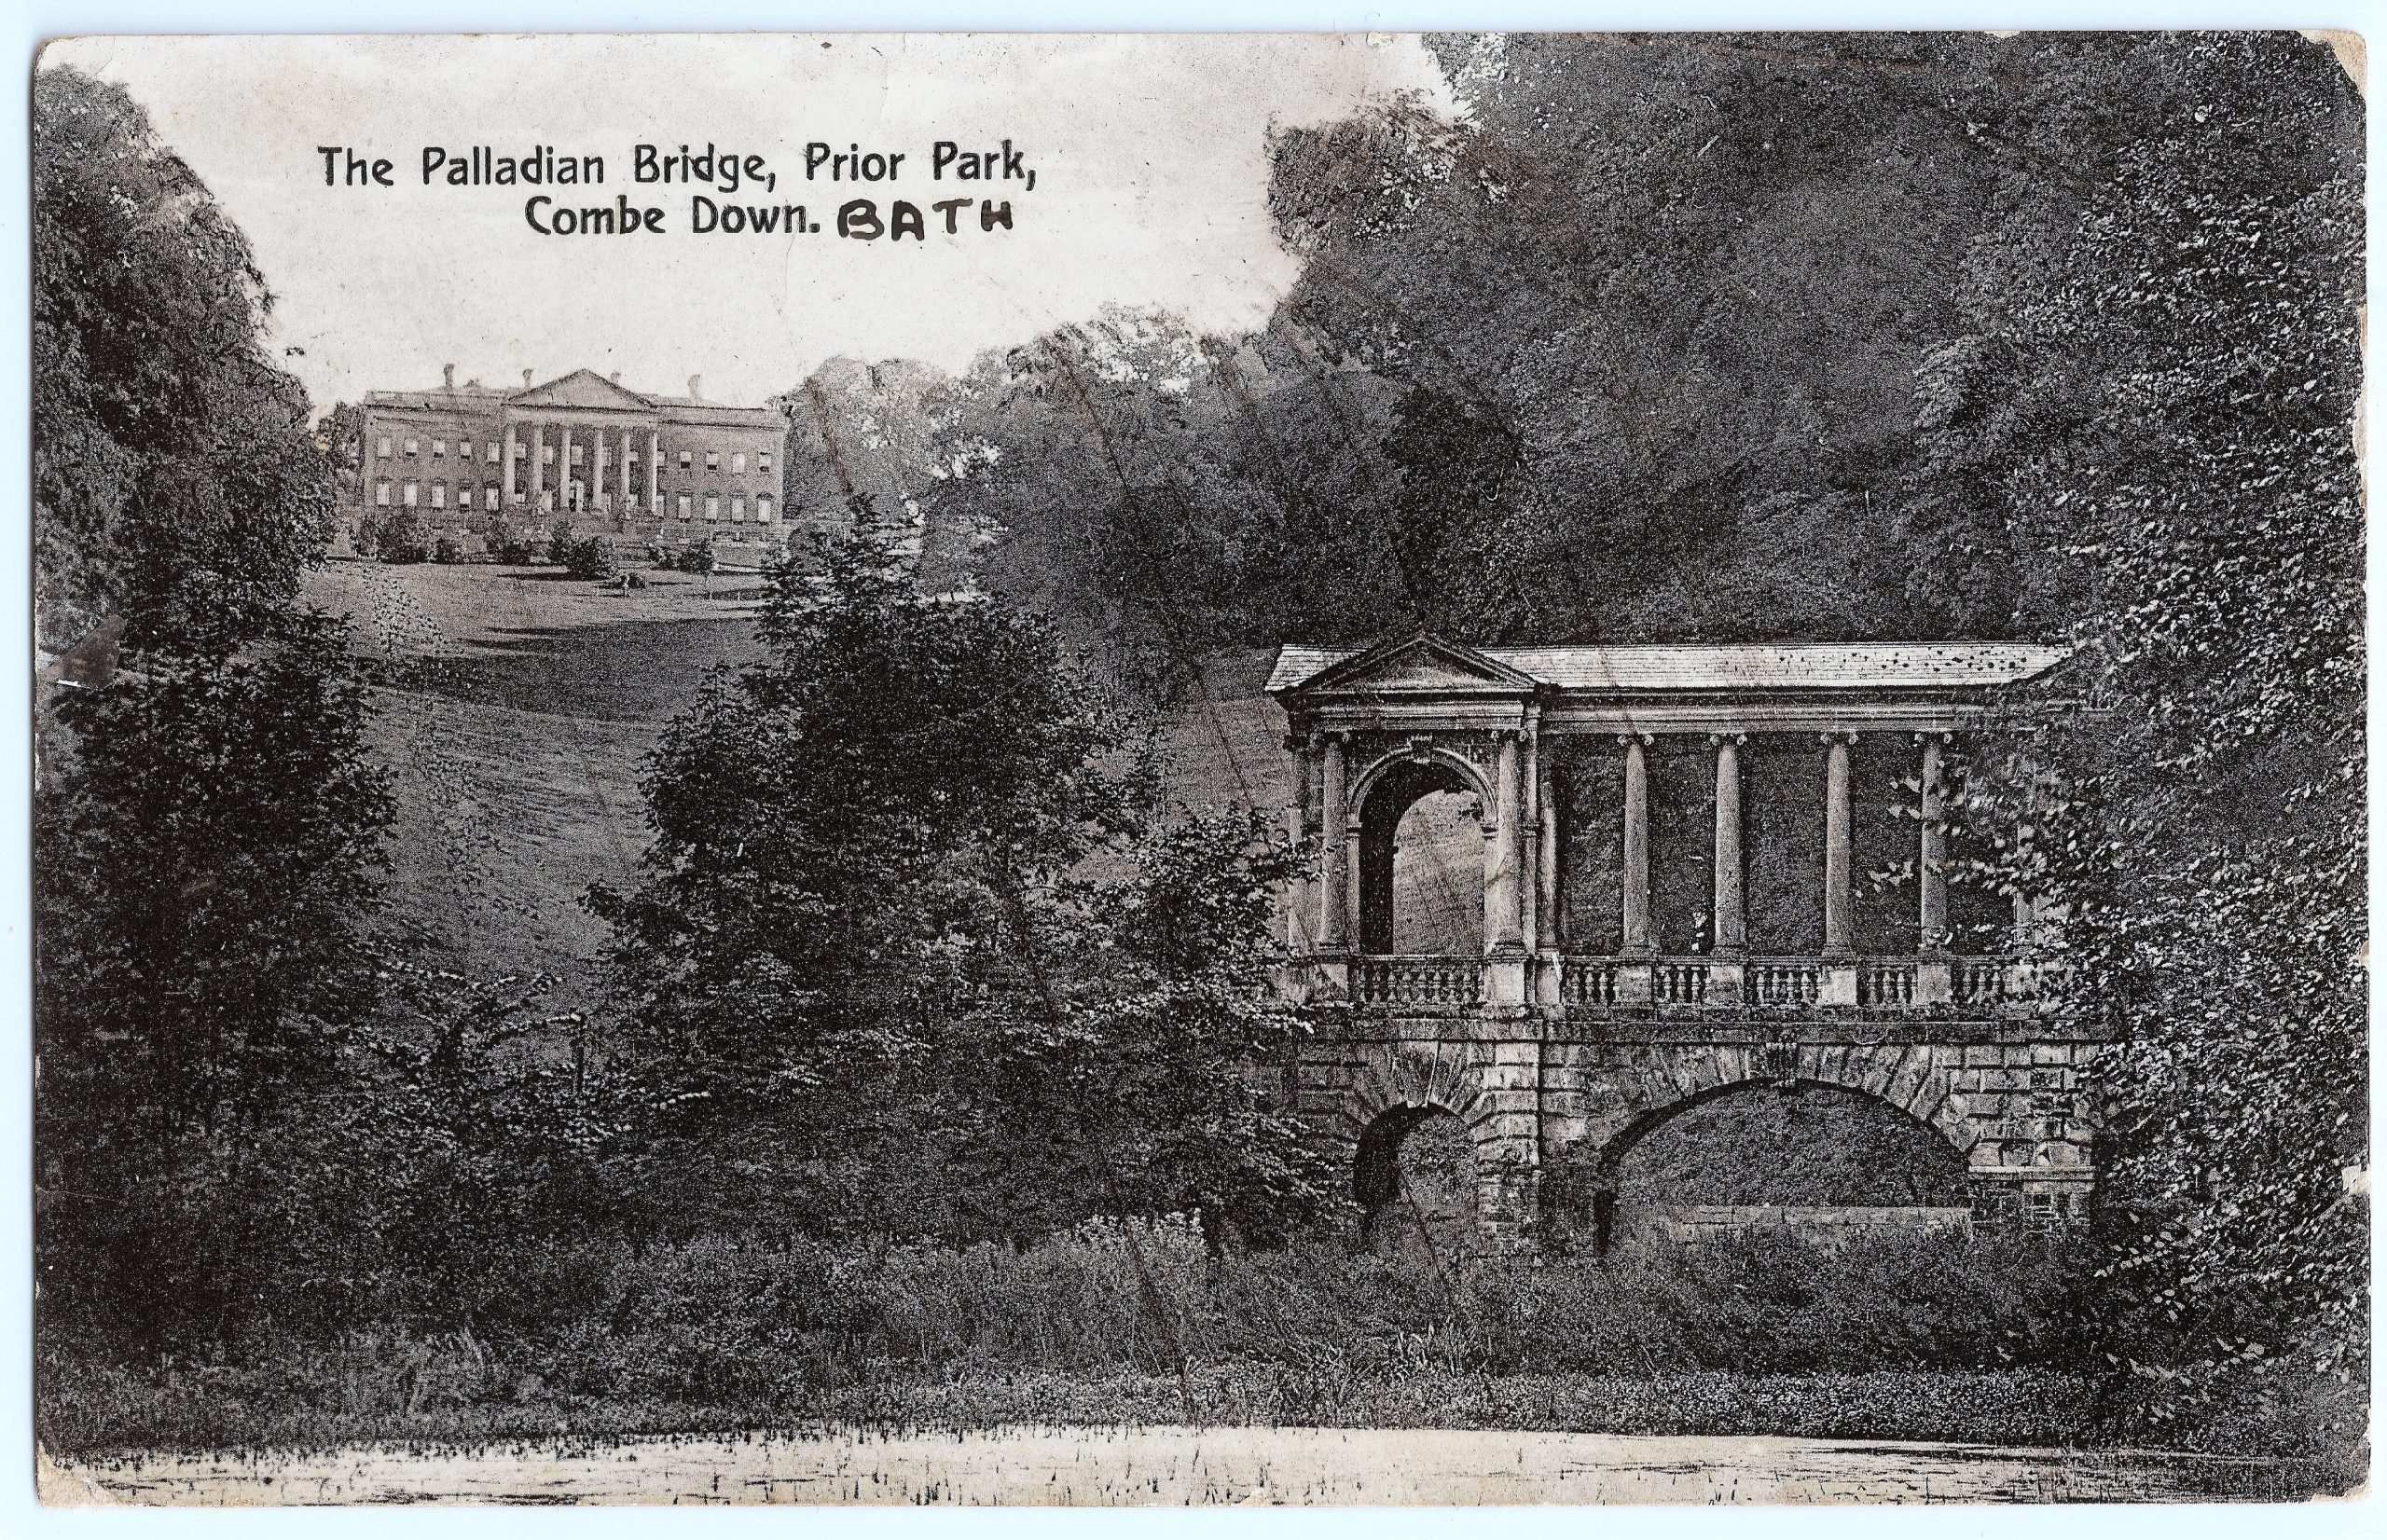 Palladian Bridge, Prior Park, 1914